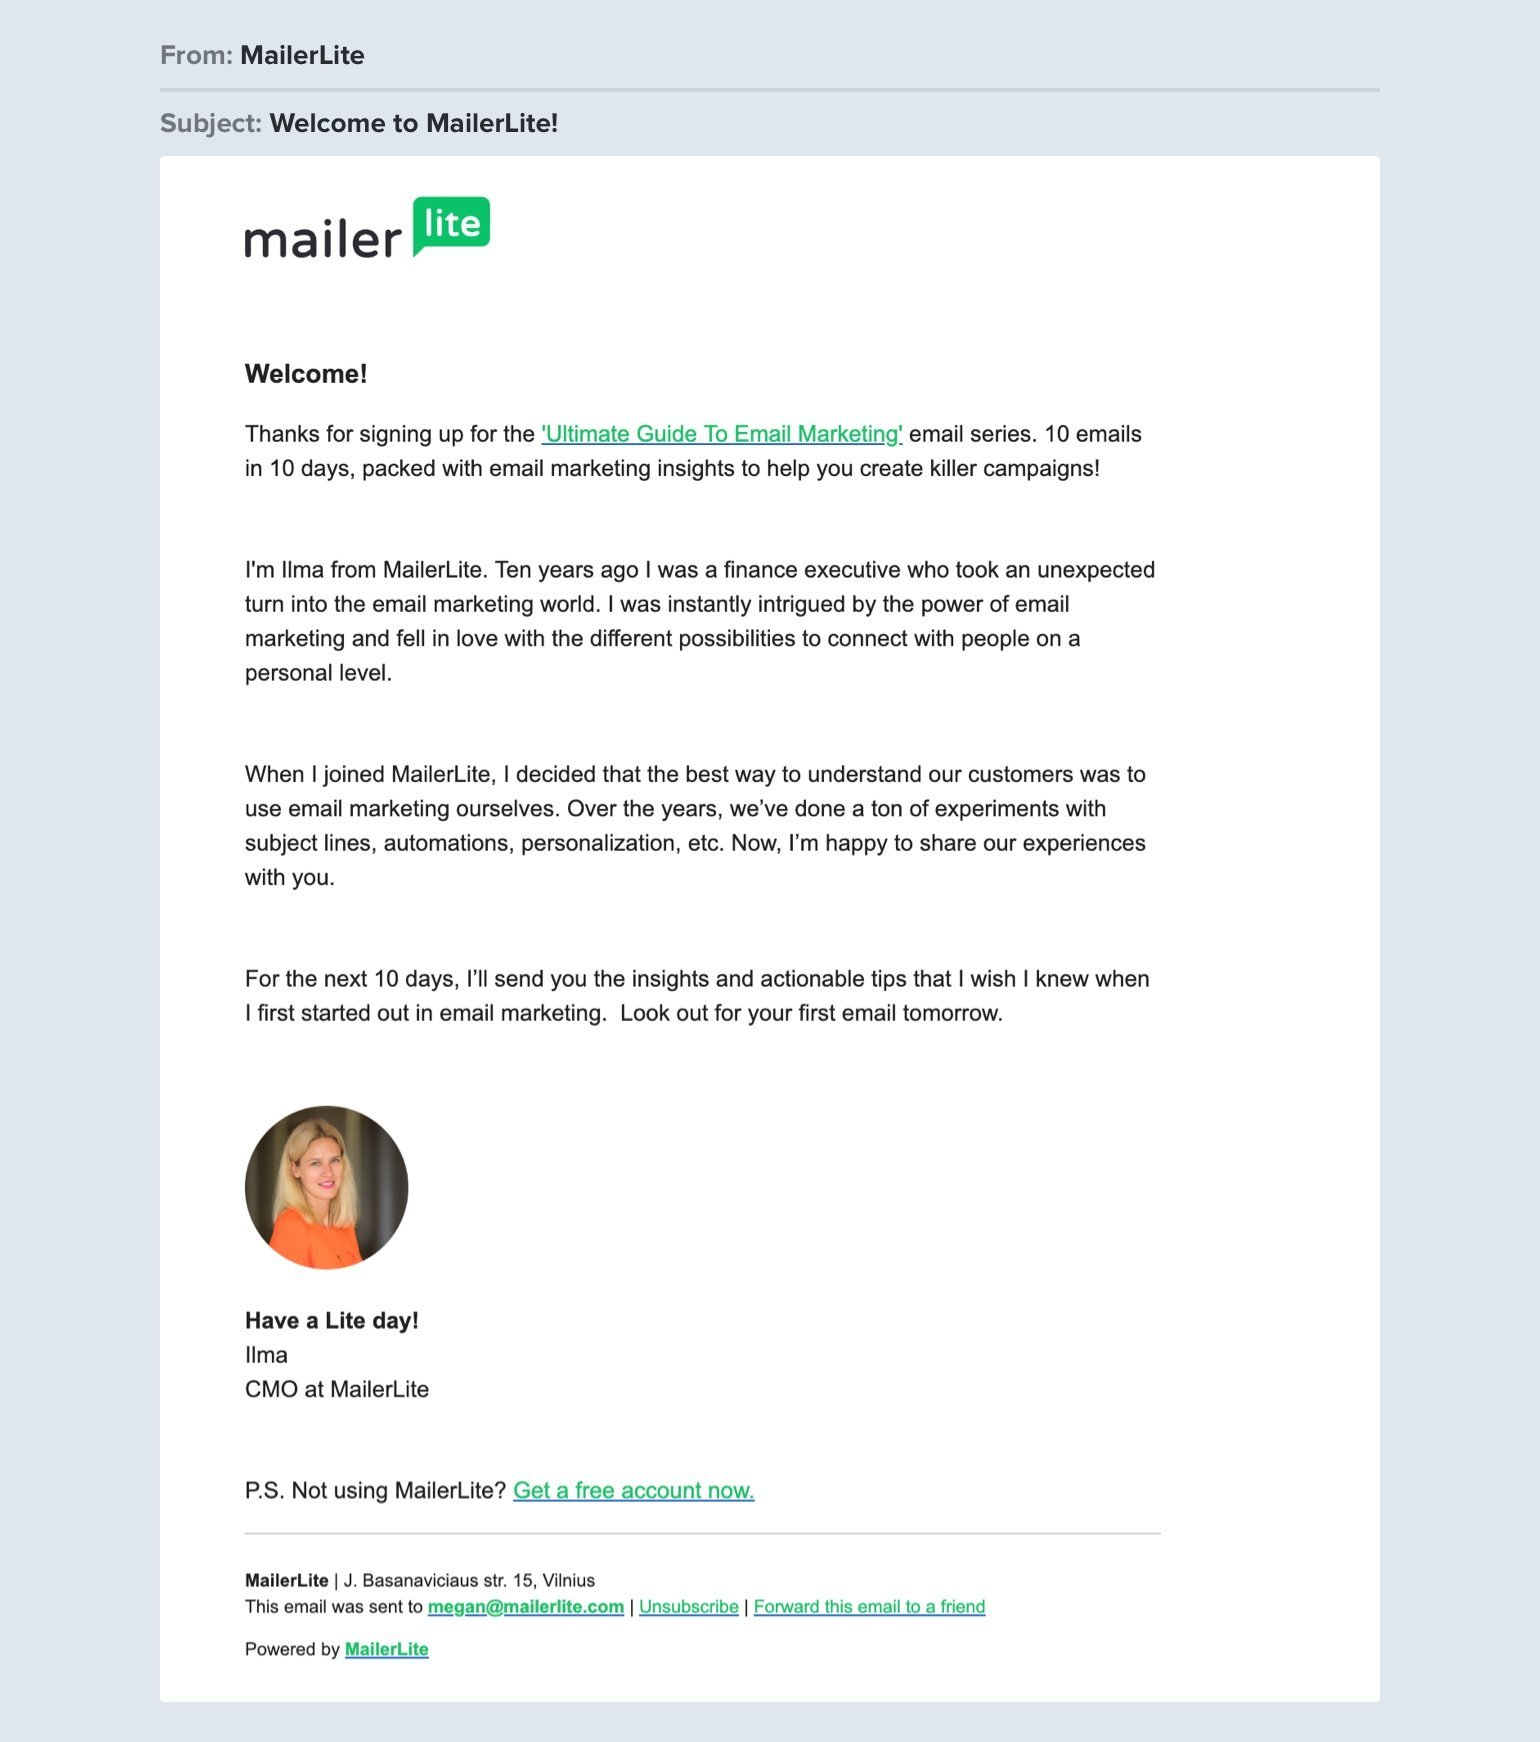 MailerLite welcome email example